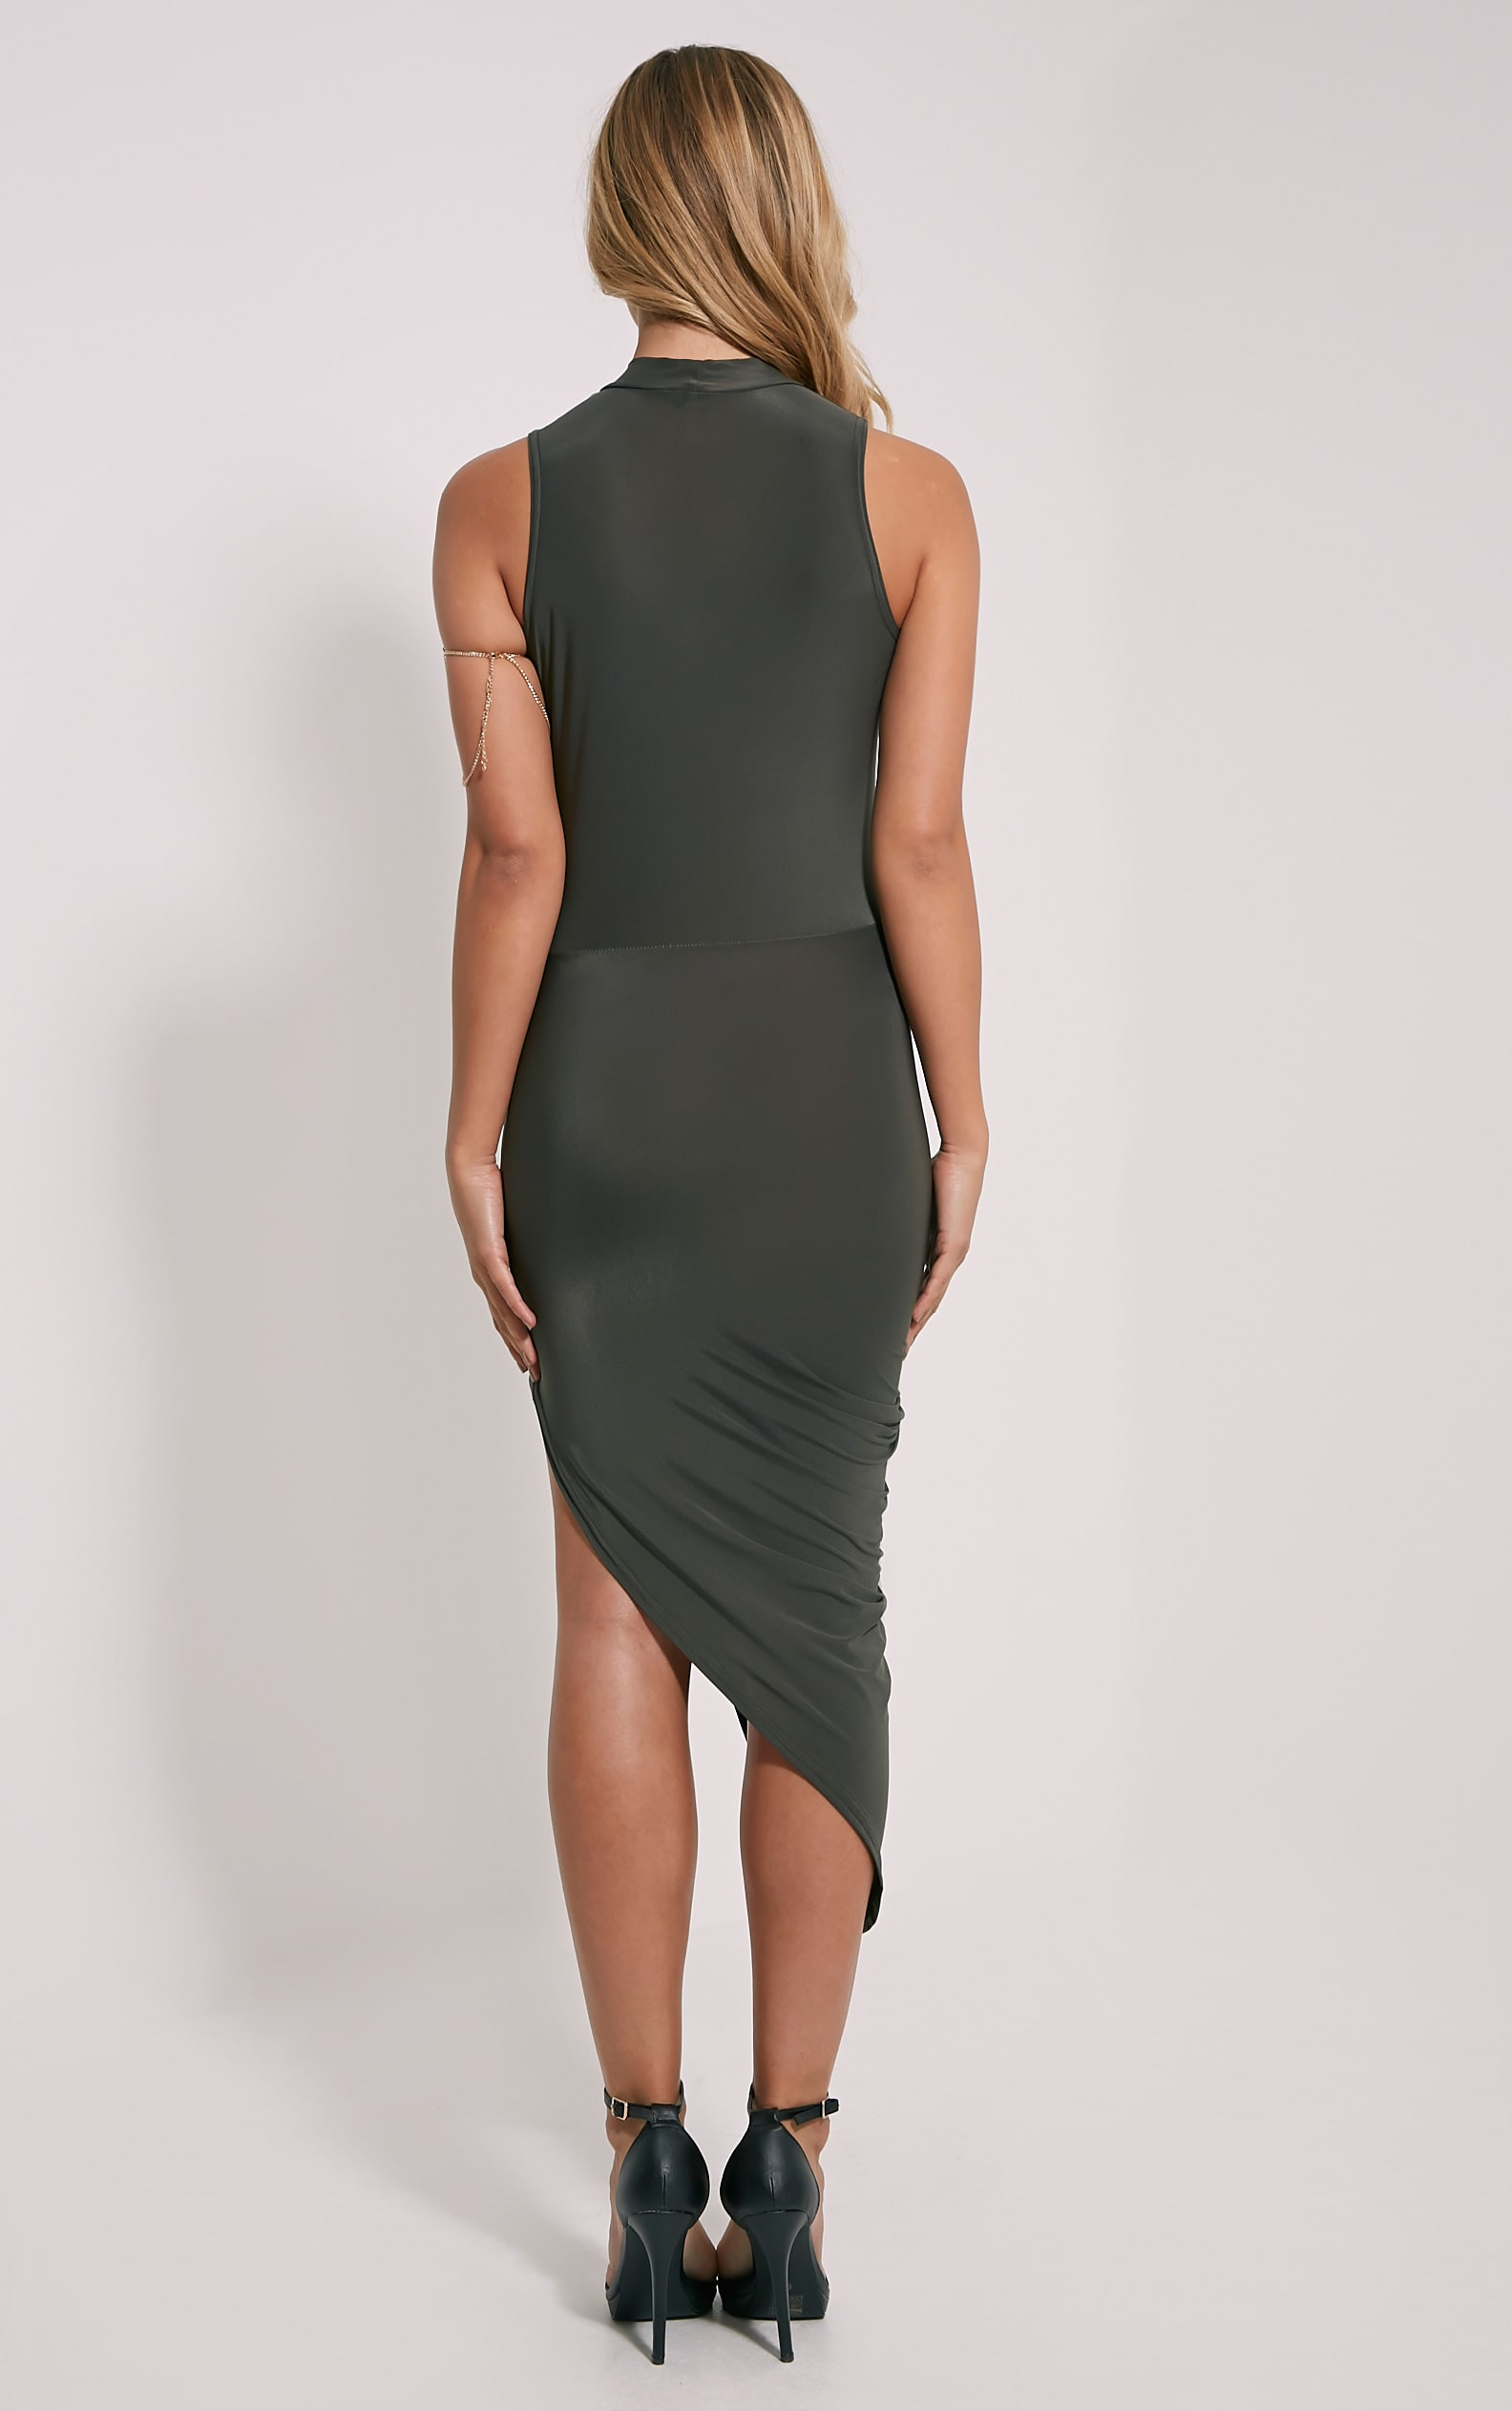 Prim Khaki Slinky Drape Asymmetric Dress 2